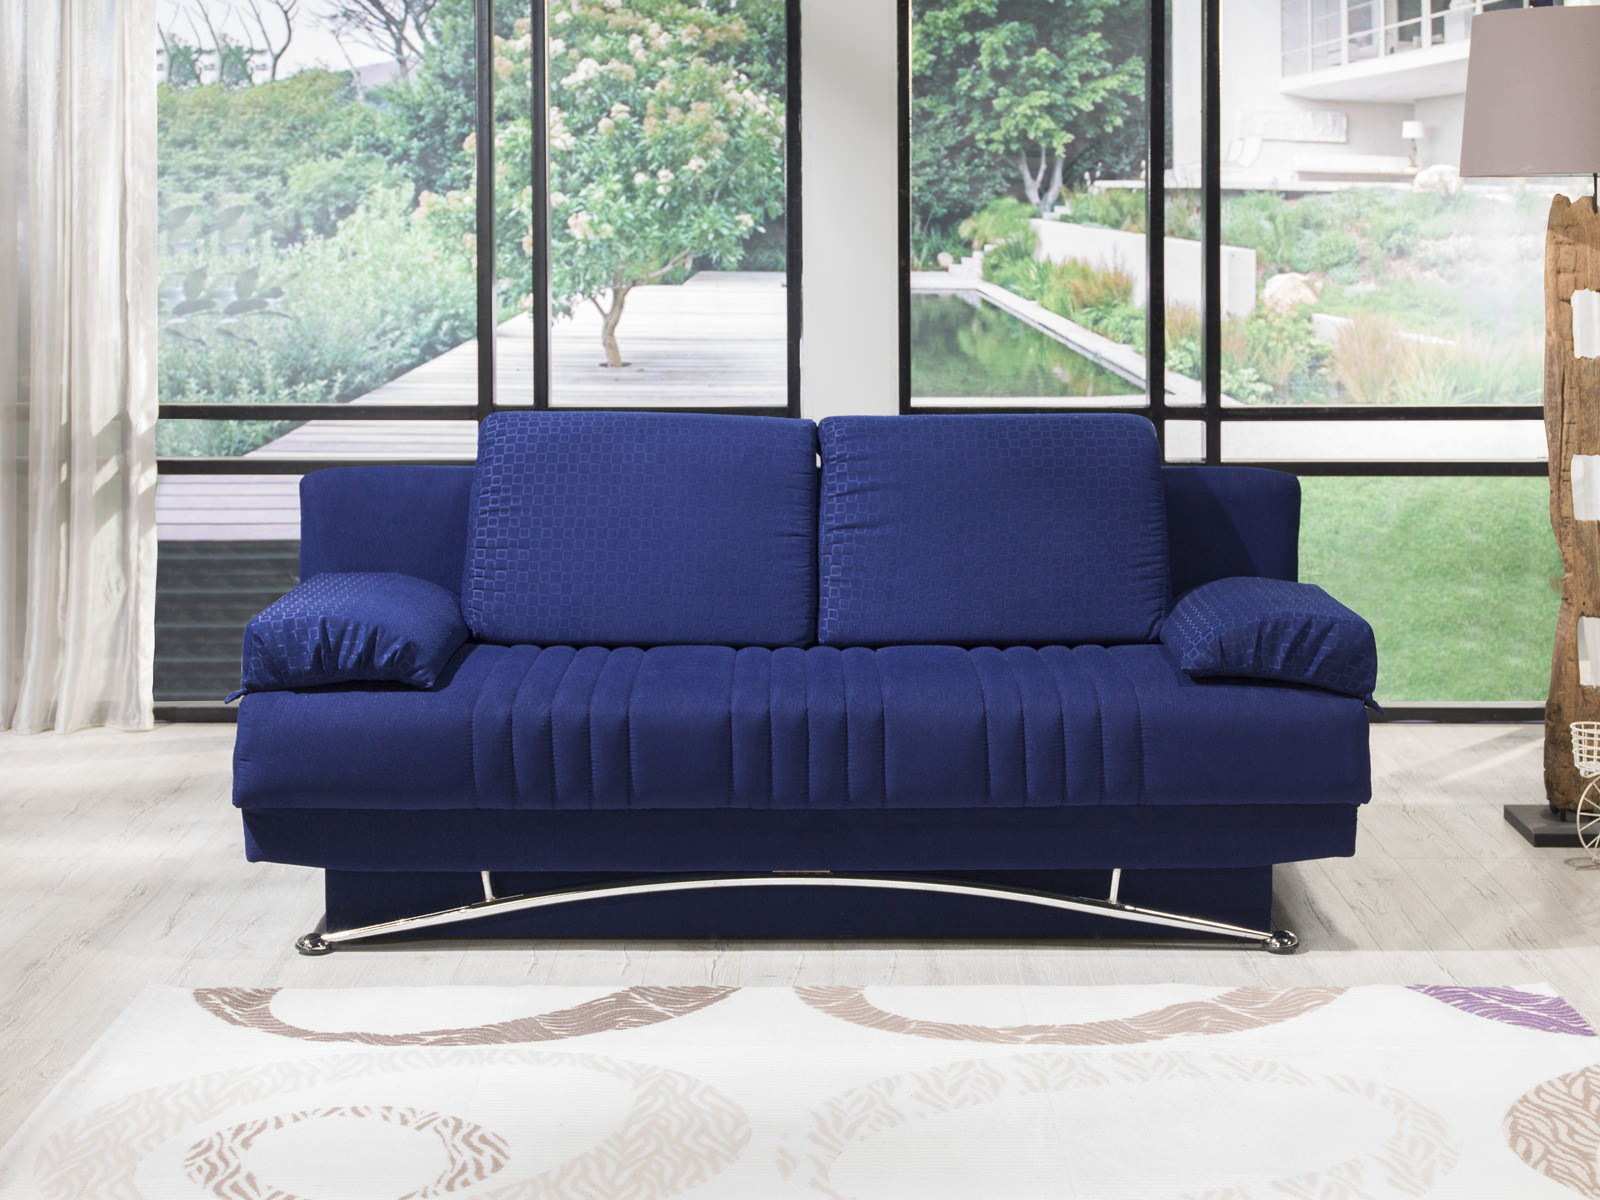 Marvelous Fantasy Tetris Blue Convertible Sofa Bed By Istikbal Furniture Theyellowbook Wood Chair Design Ideas Theyellowbookinfo